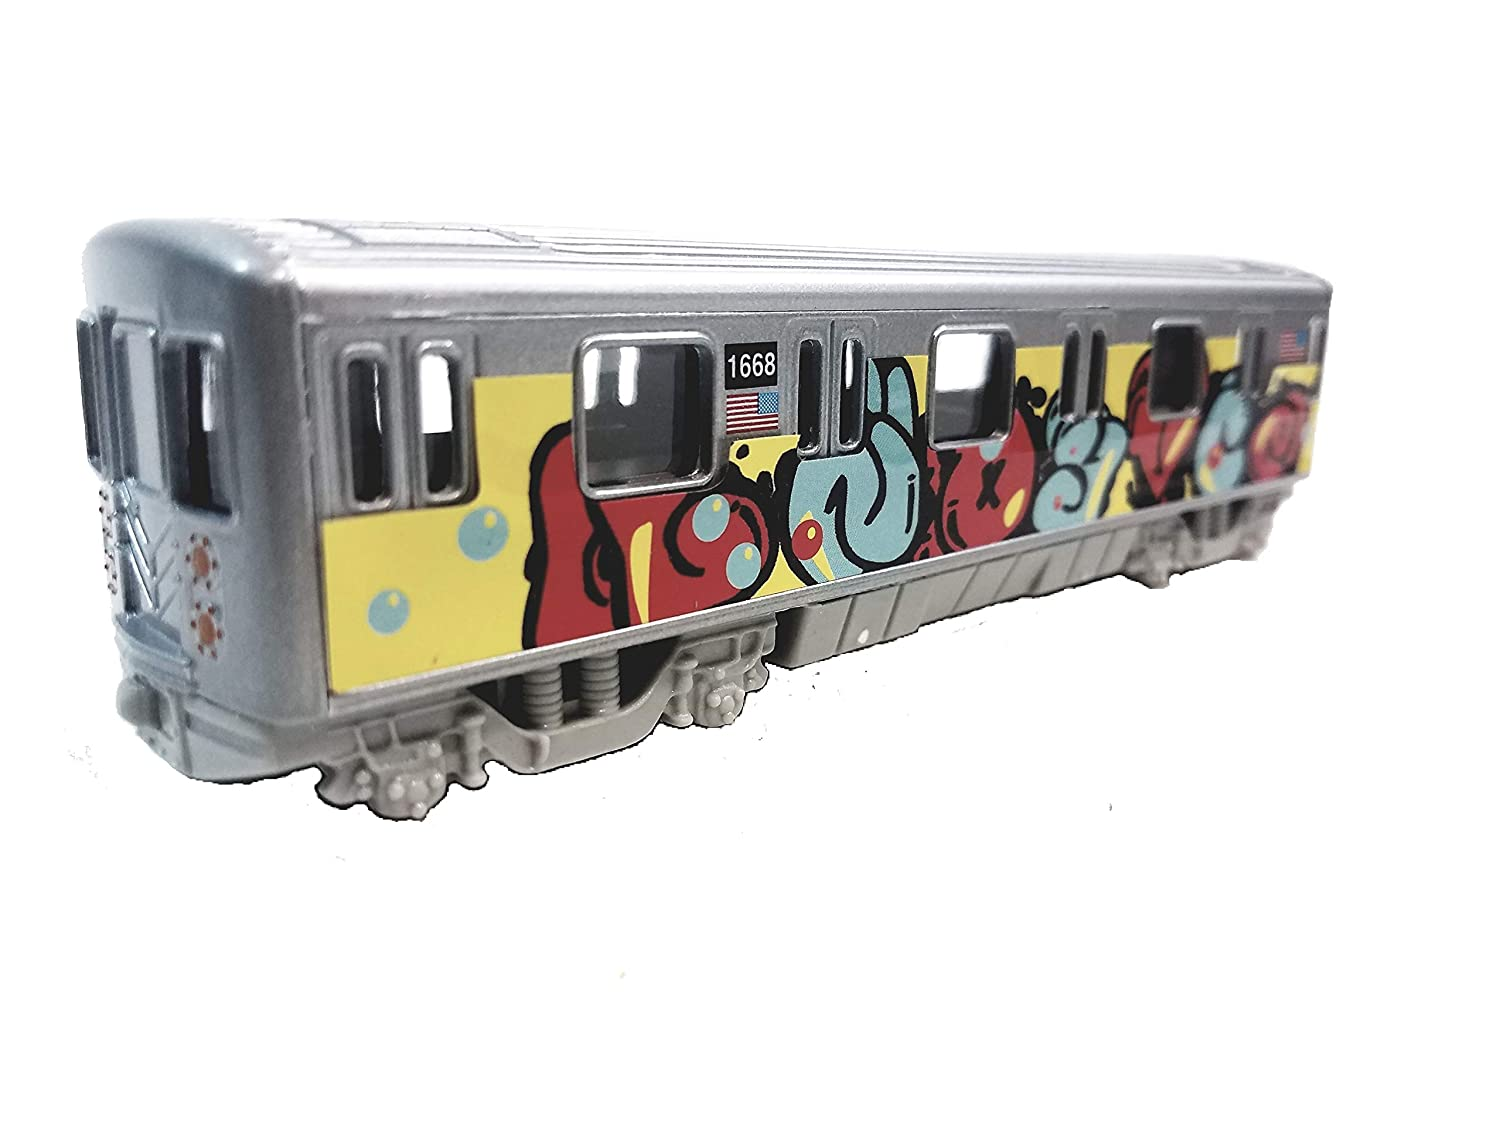 Metro NYC New York City 7 Train Puffy Letter Tag Graffiti Retro Subway Car 1 100 Scale Diecast